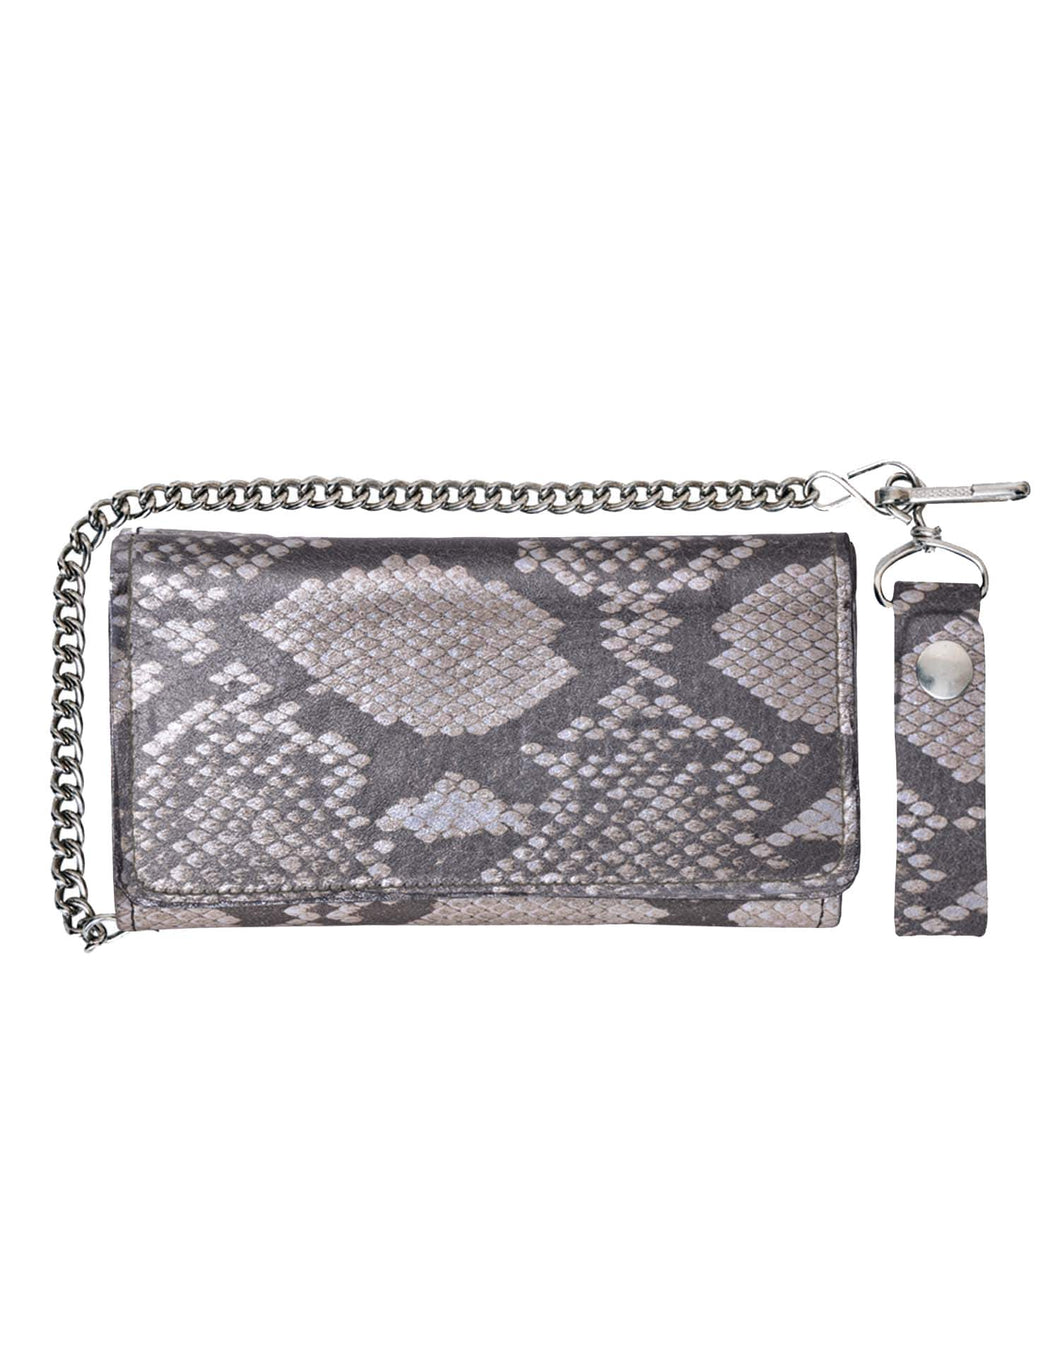 UNIK Leather Biker Chain Wallet - USA Biker Leather